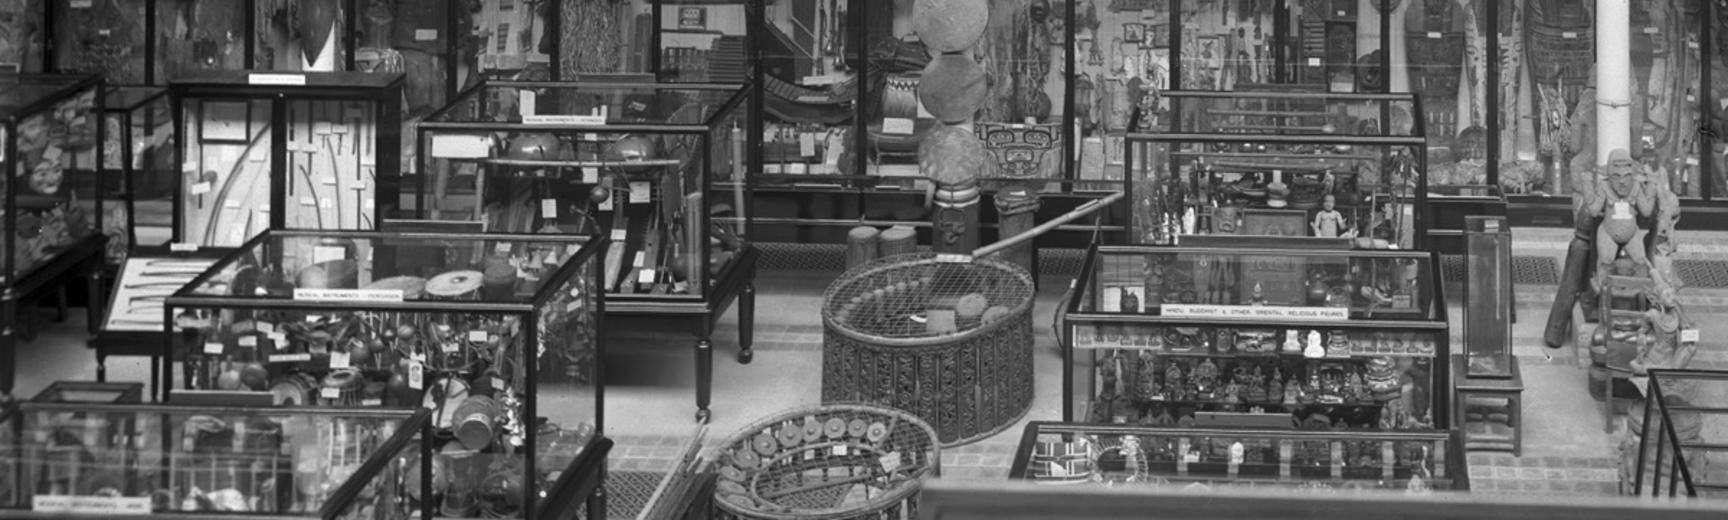 Early view of interior of Pitt Rivers Museum